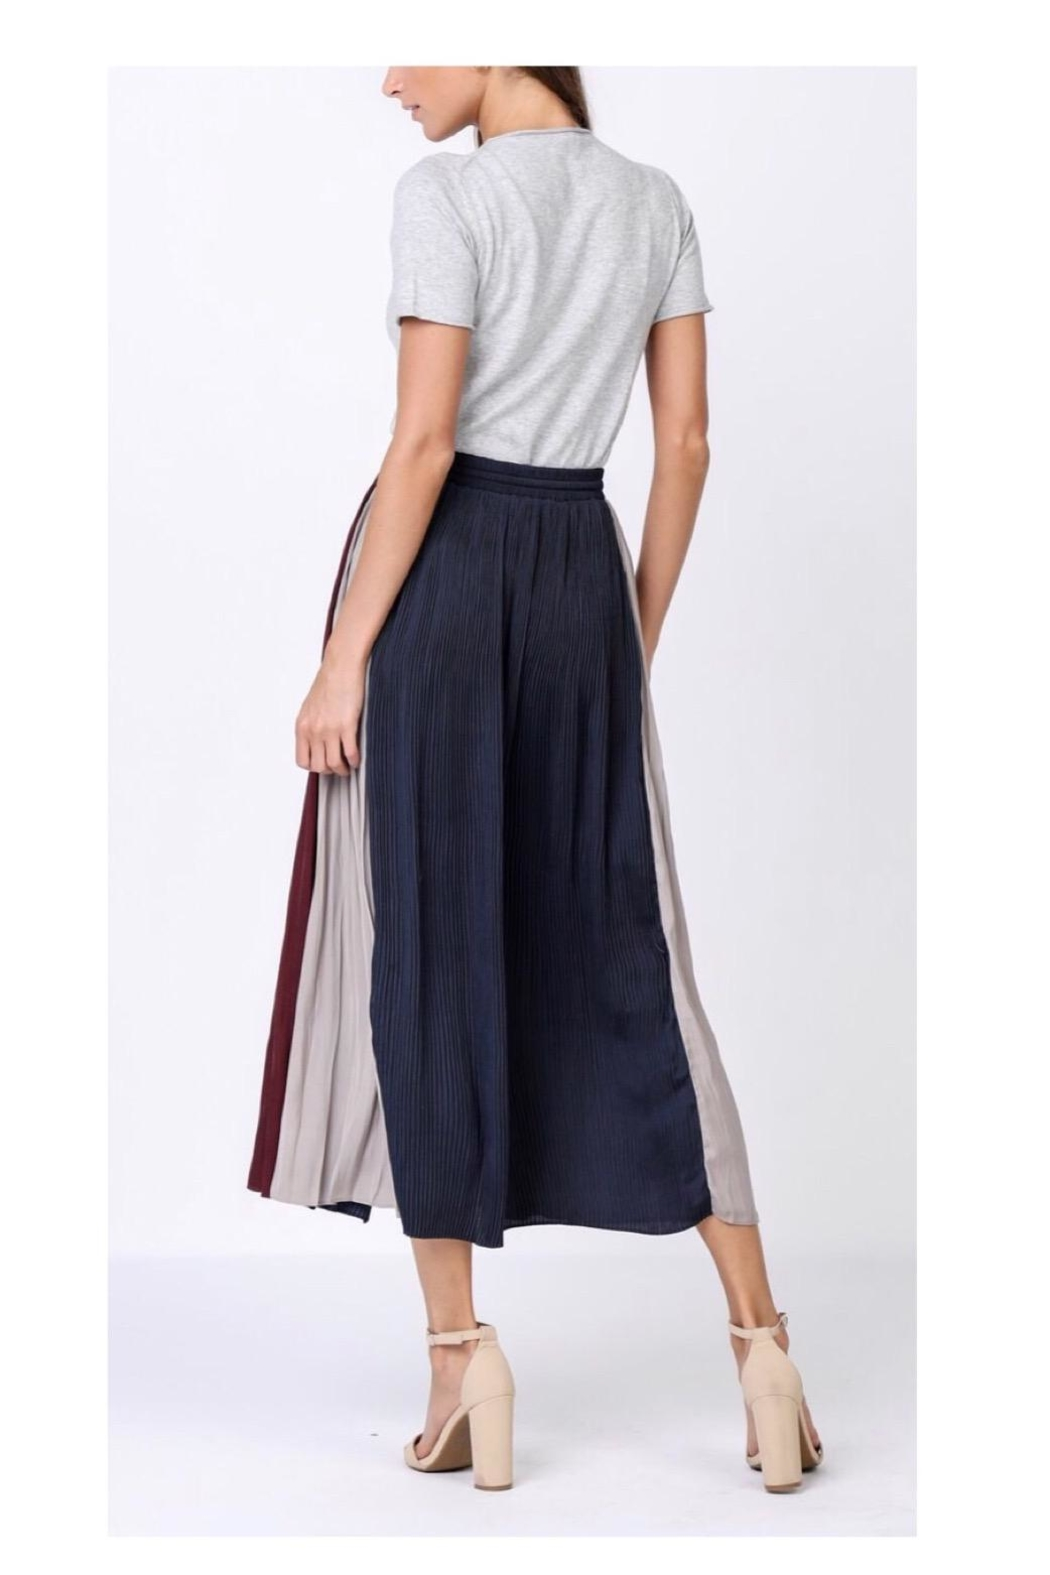 Current Air Stripe Maxi Skirt - Front Full Image